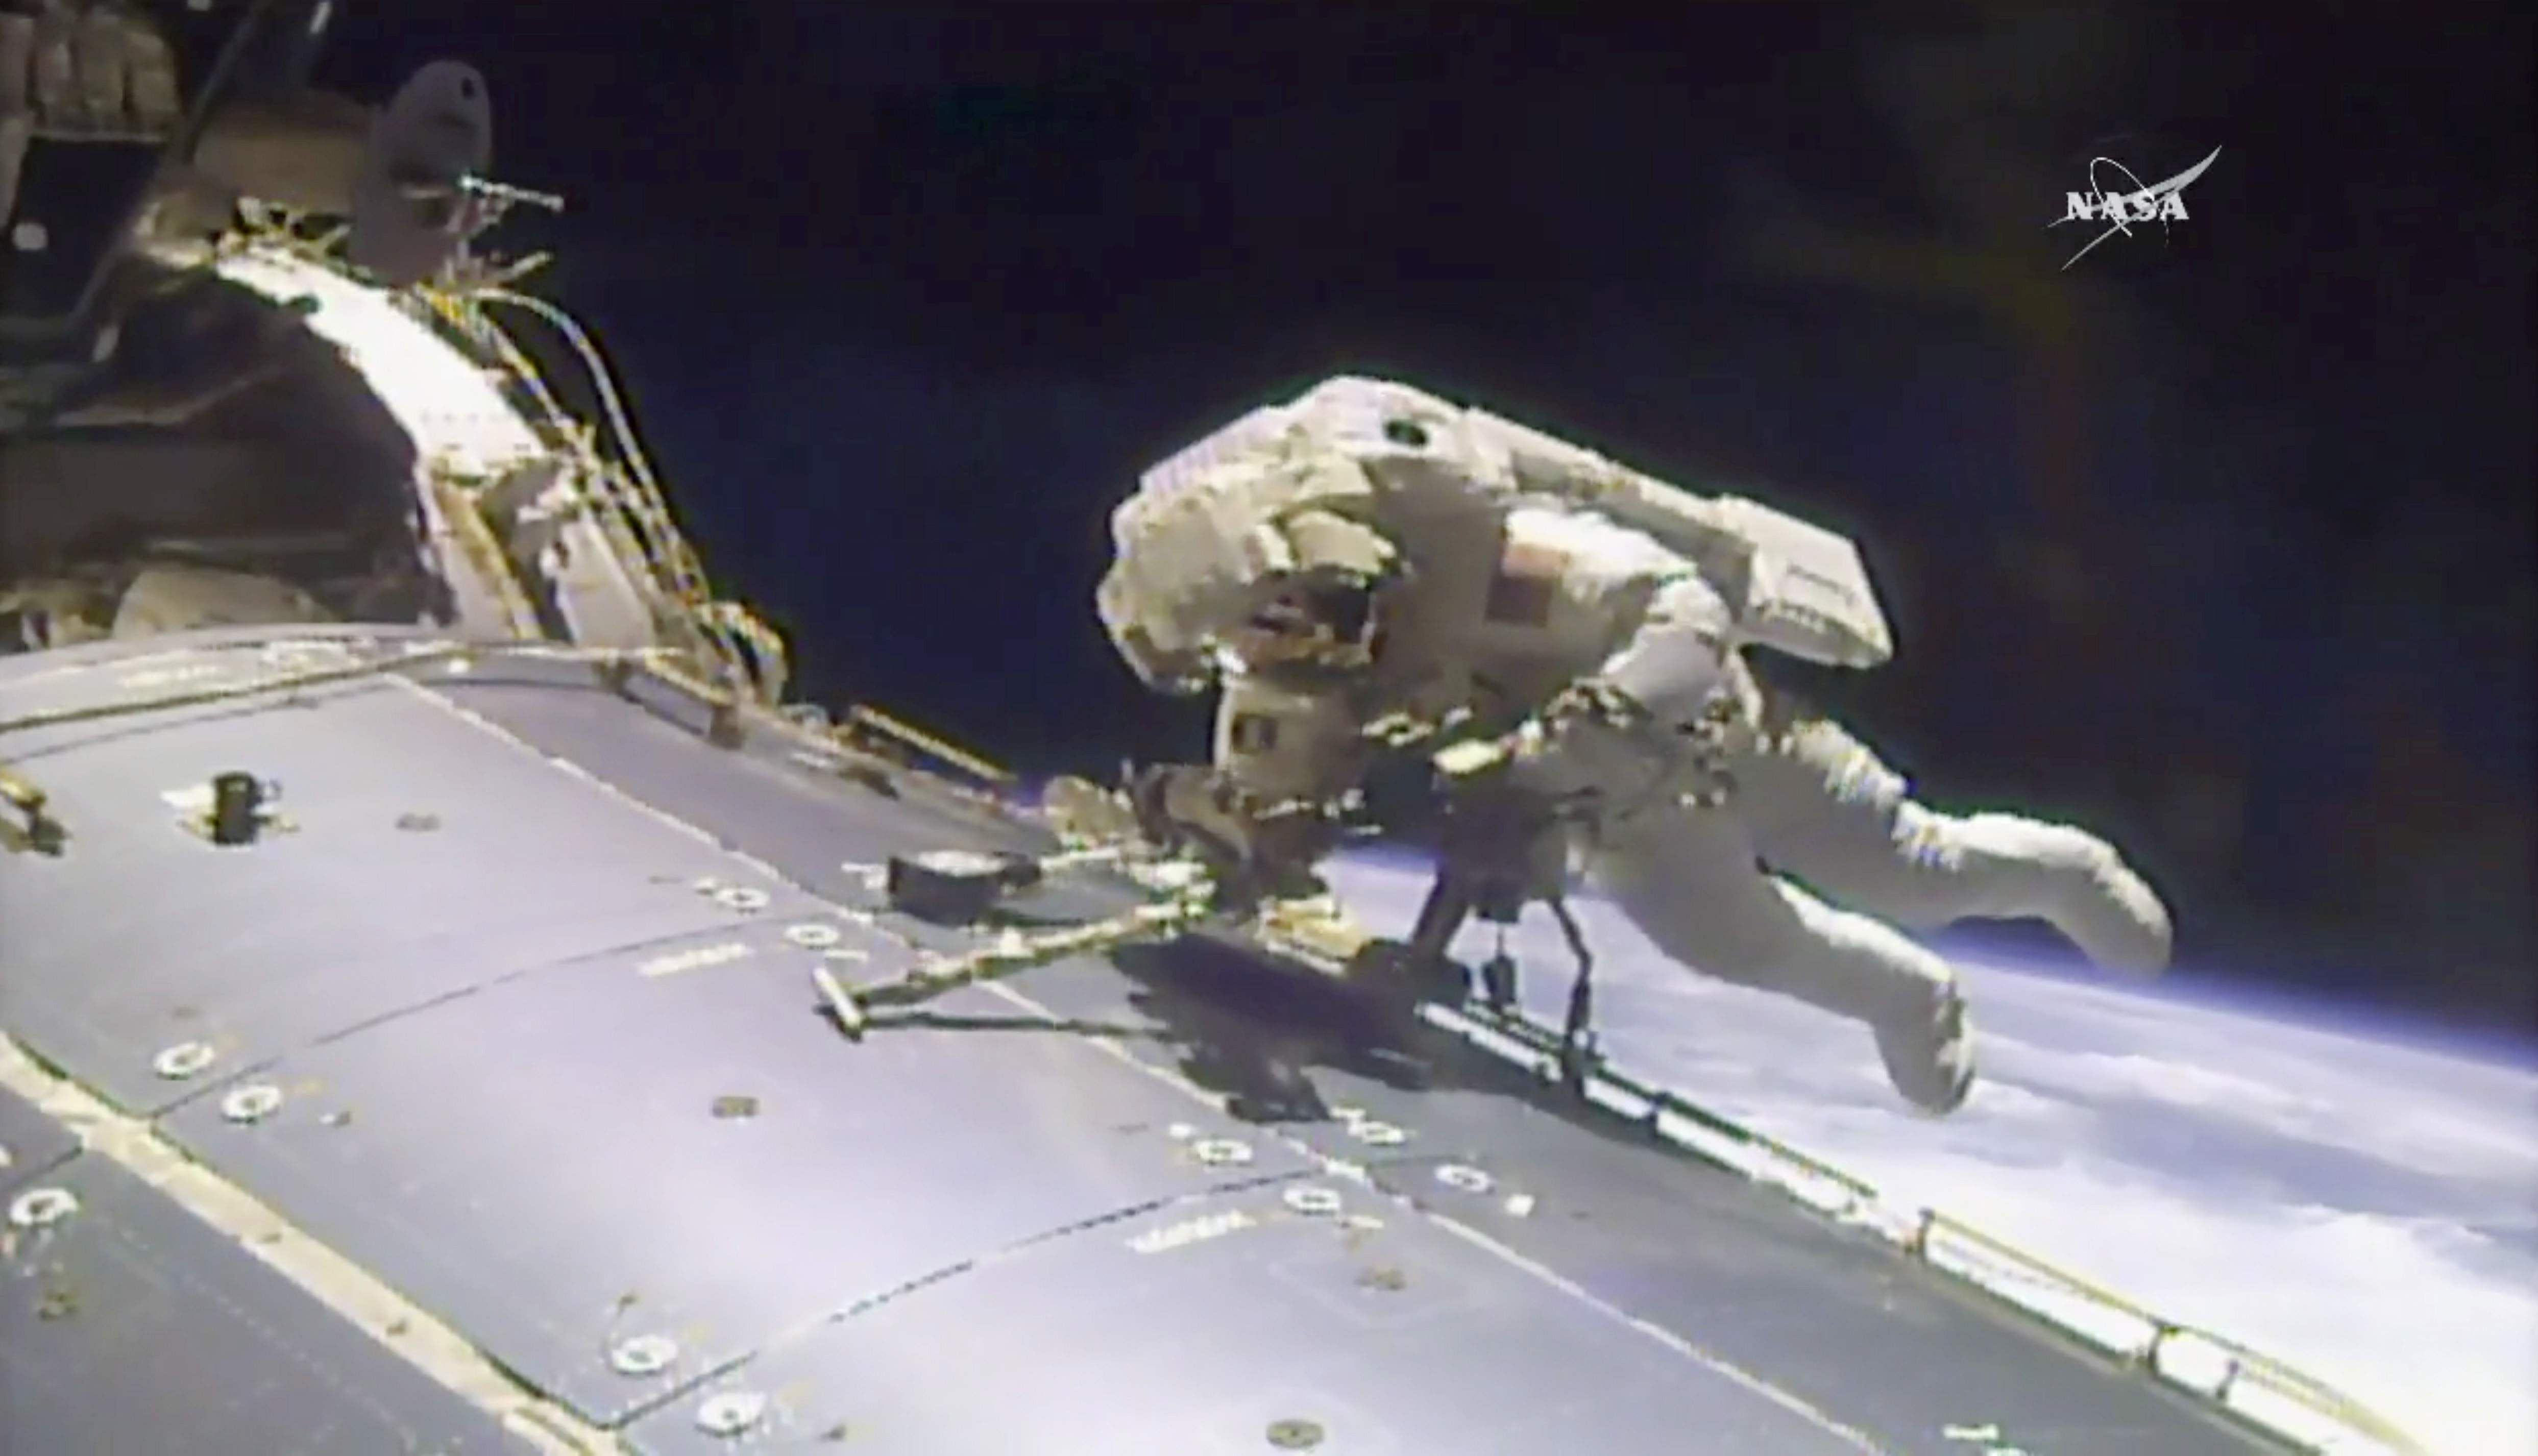 US astronauts conduct 200th spacewalk - The New Indian ...